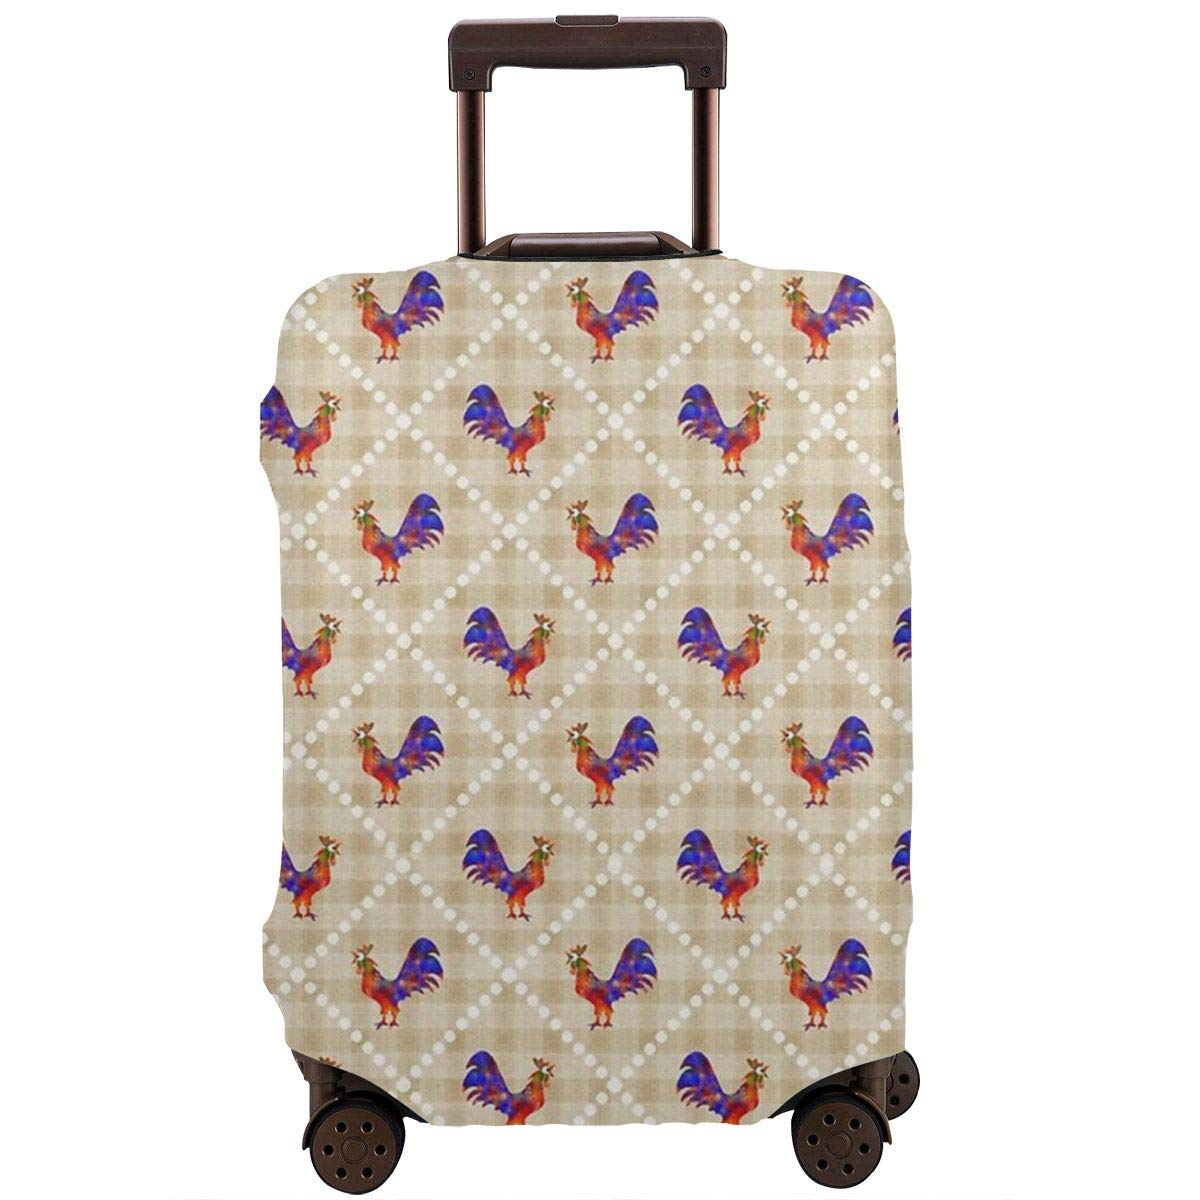 Luggage Cover Rooster Lattice Pattern Protective Travel Trunk Case Elastic Luggage Suitcase Protector Cover